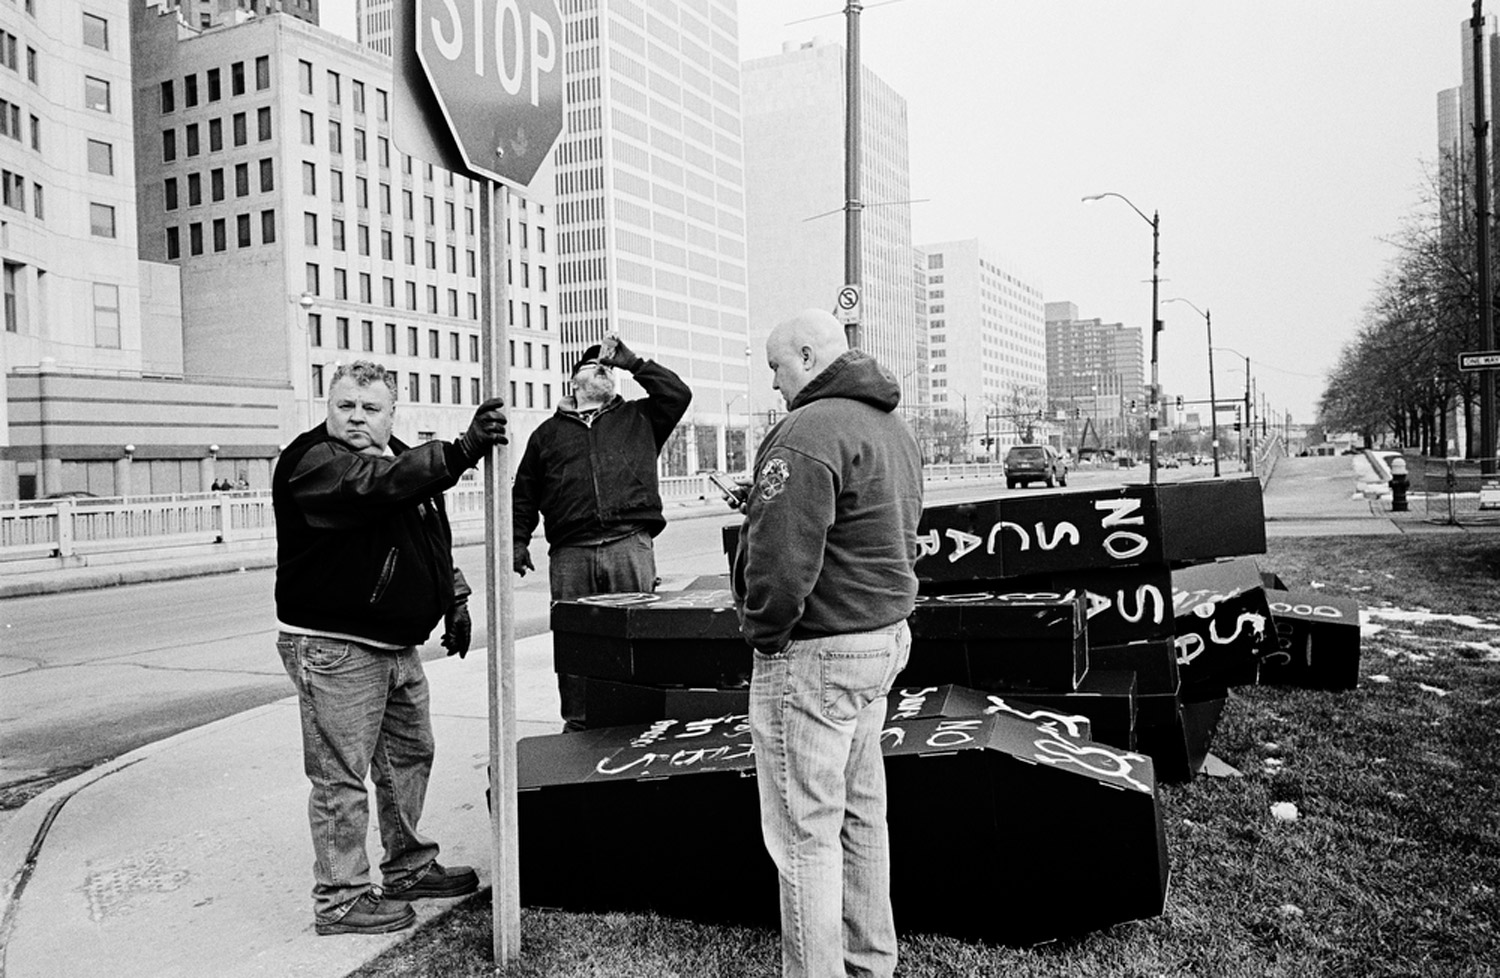 Auto union leaders and union members who recently lost their jobs in the Fiat/Chrysler merger hold a demonstration outside the North American International Auto Show at the Cobo Center in Detroit, January 16, 2010                                                              Suau:  Over the years, I have often thought about history and its relationship to photography, but now is the time to consider this idea with each curve in the long road ahead. The relationship with the Library of Congress, and my chance to work with Facing Change is an opportunity that dreams are made of. It is a unique chance to explore America and document its history in these times of political and economic uncertainty and mark this moment in American history with images and a vision that will be held indefinitely alongside the work of the FSA masters at the Library of Congress. As a photographer it does not get any better than that.